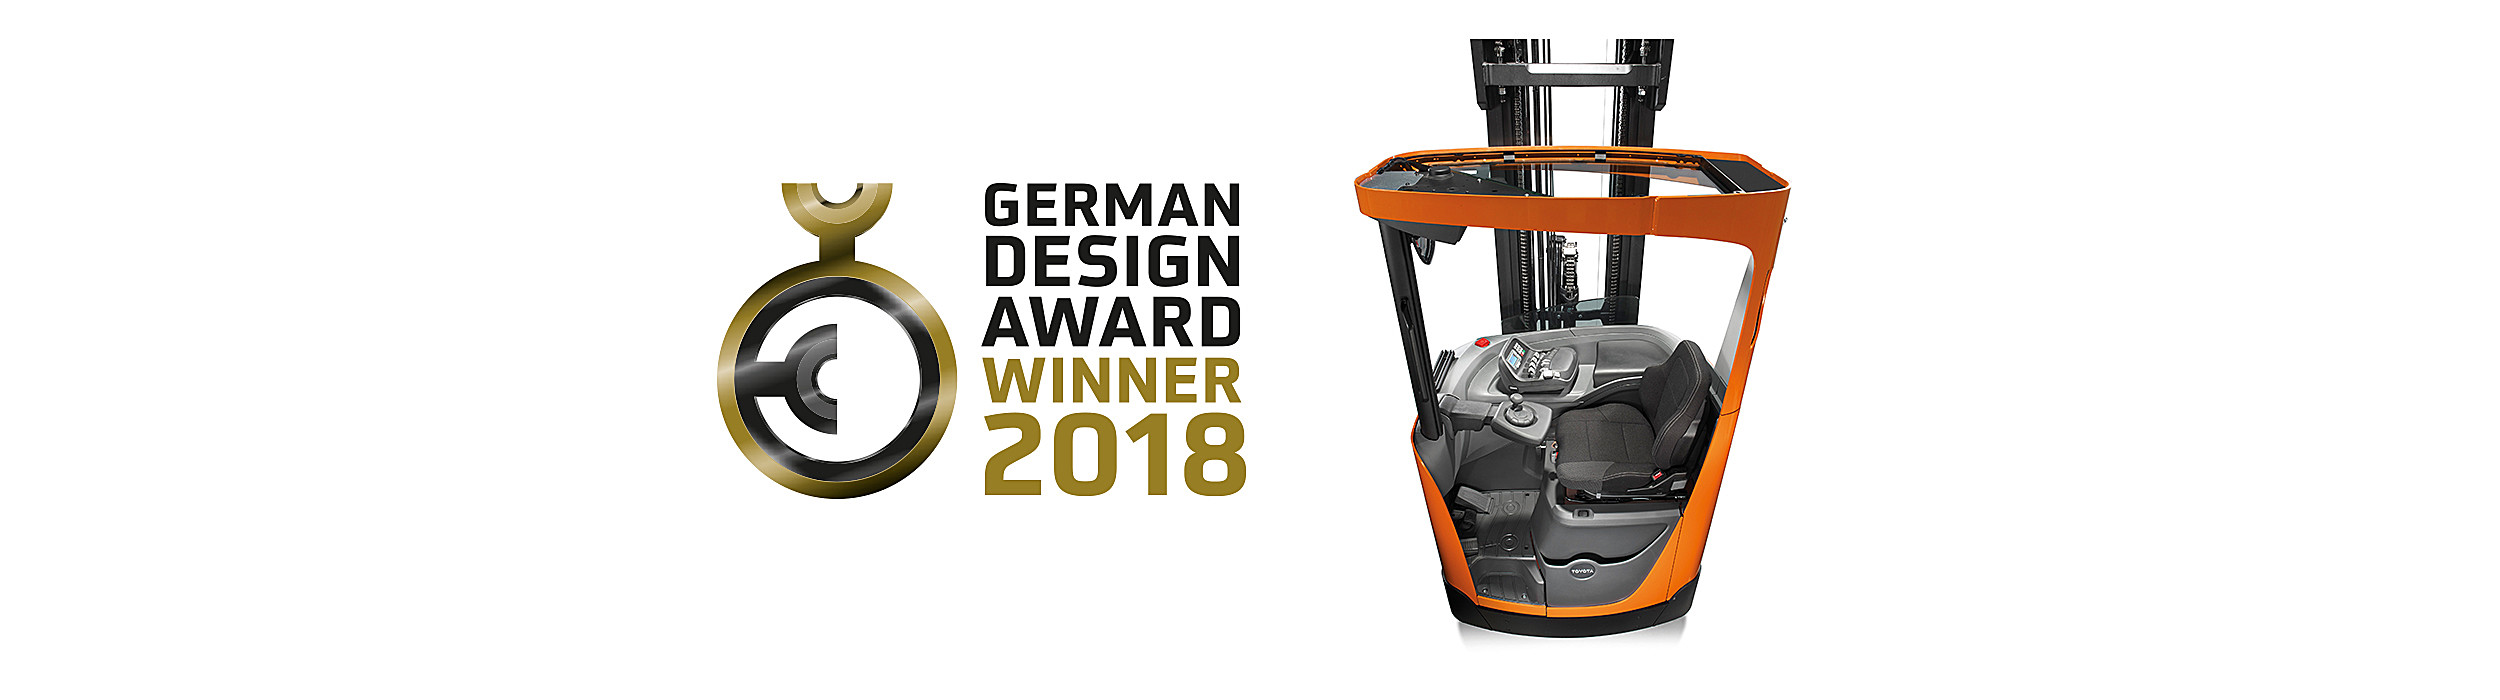 German Design Award Winner 2018 Toyota BT Reflex reach truck